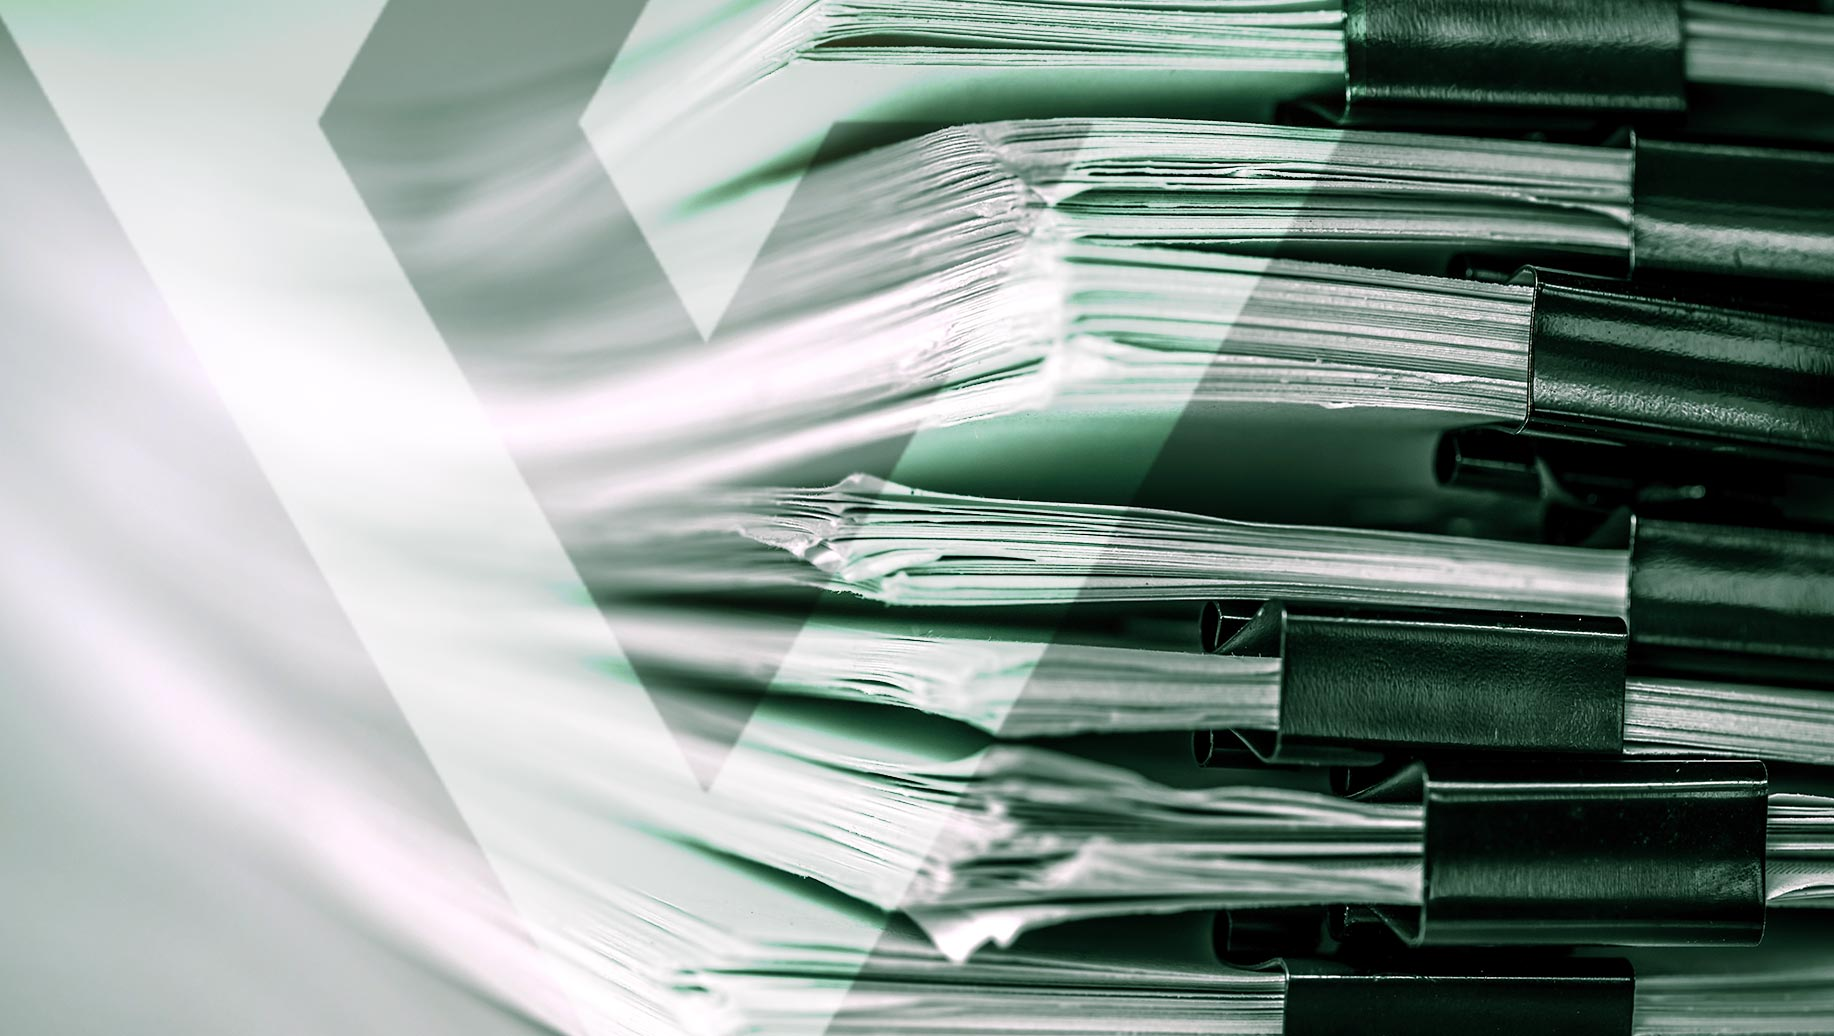 Transfer Pricing Documentation: 5 Best Practices To Follow